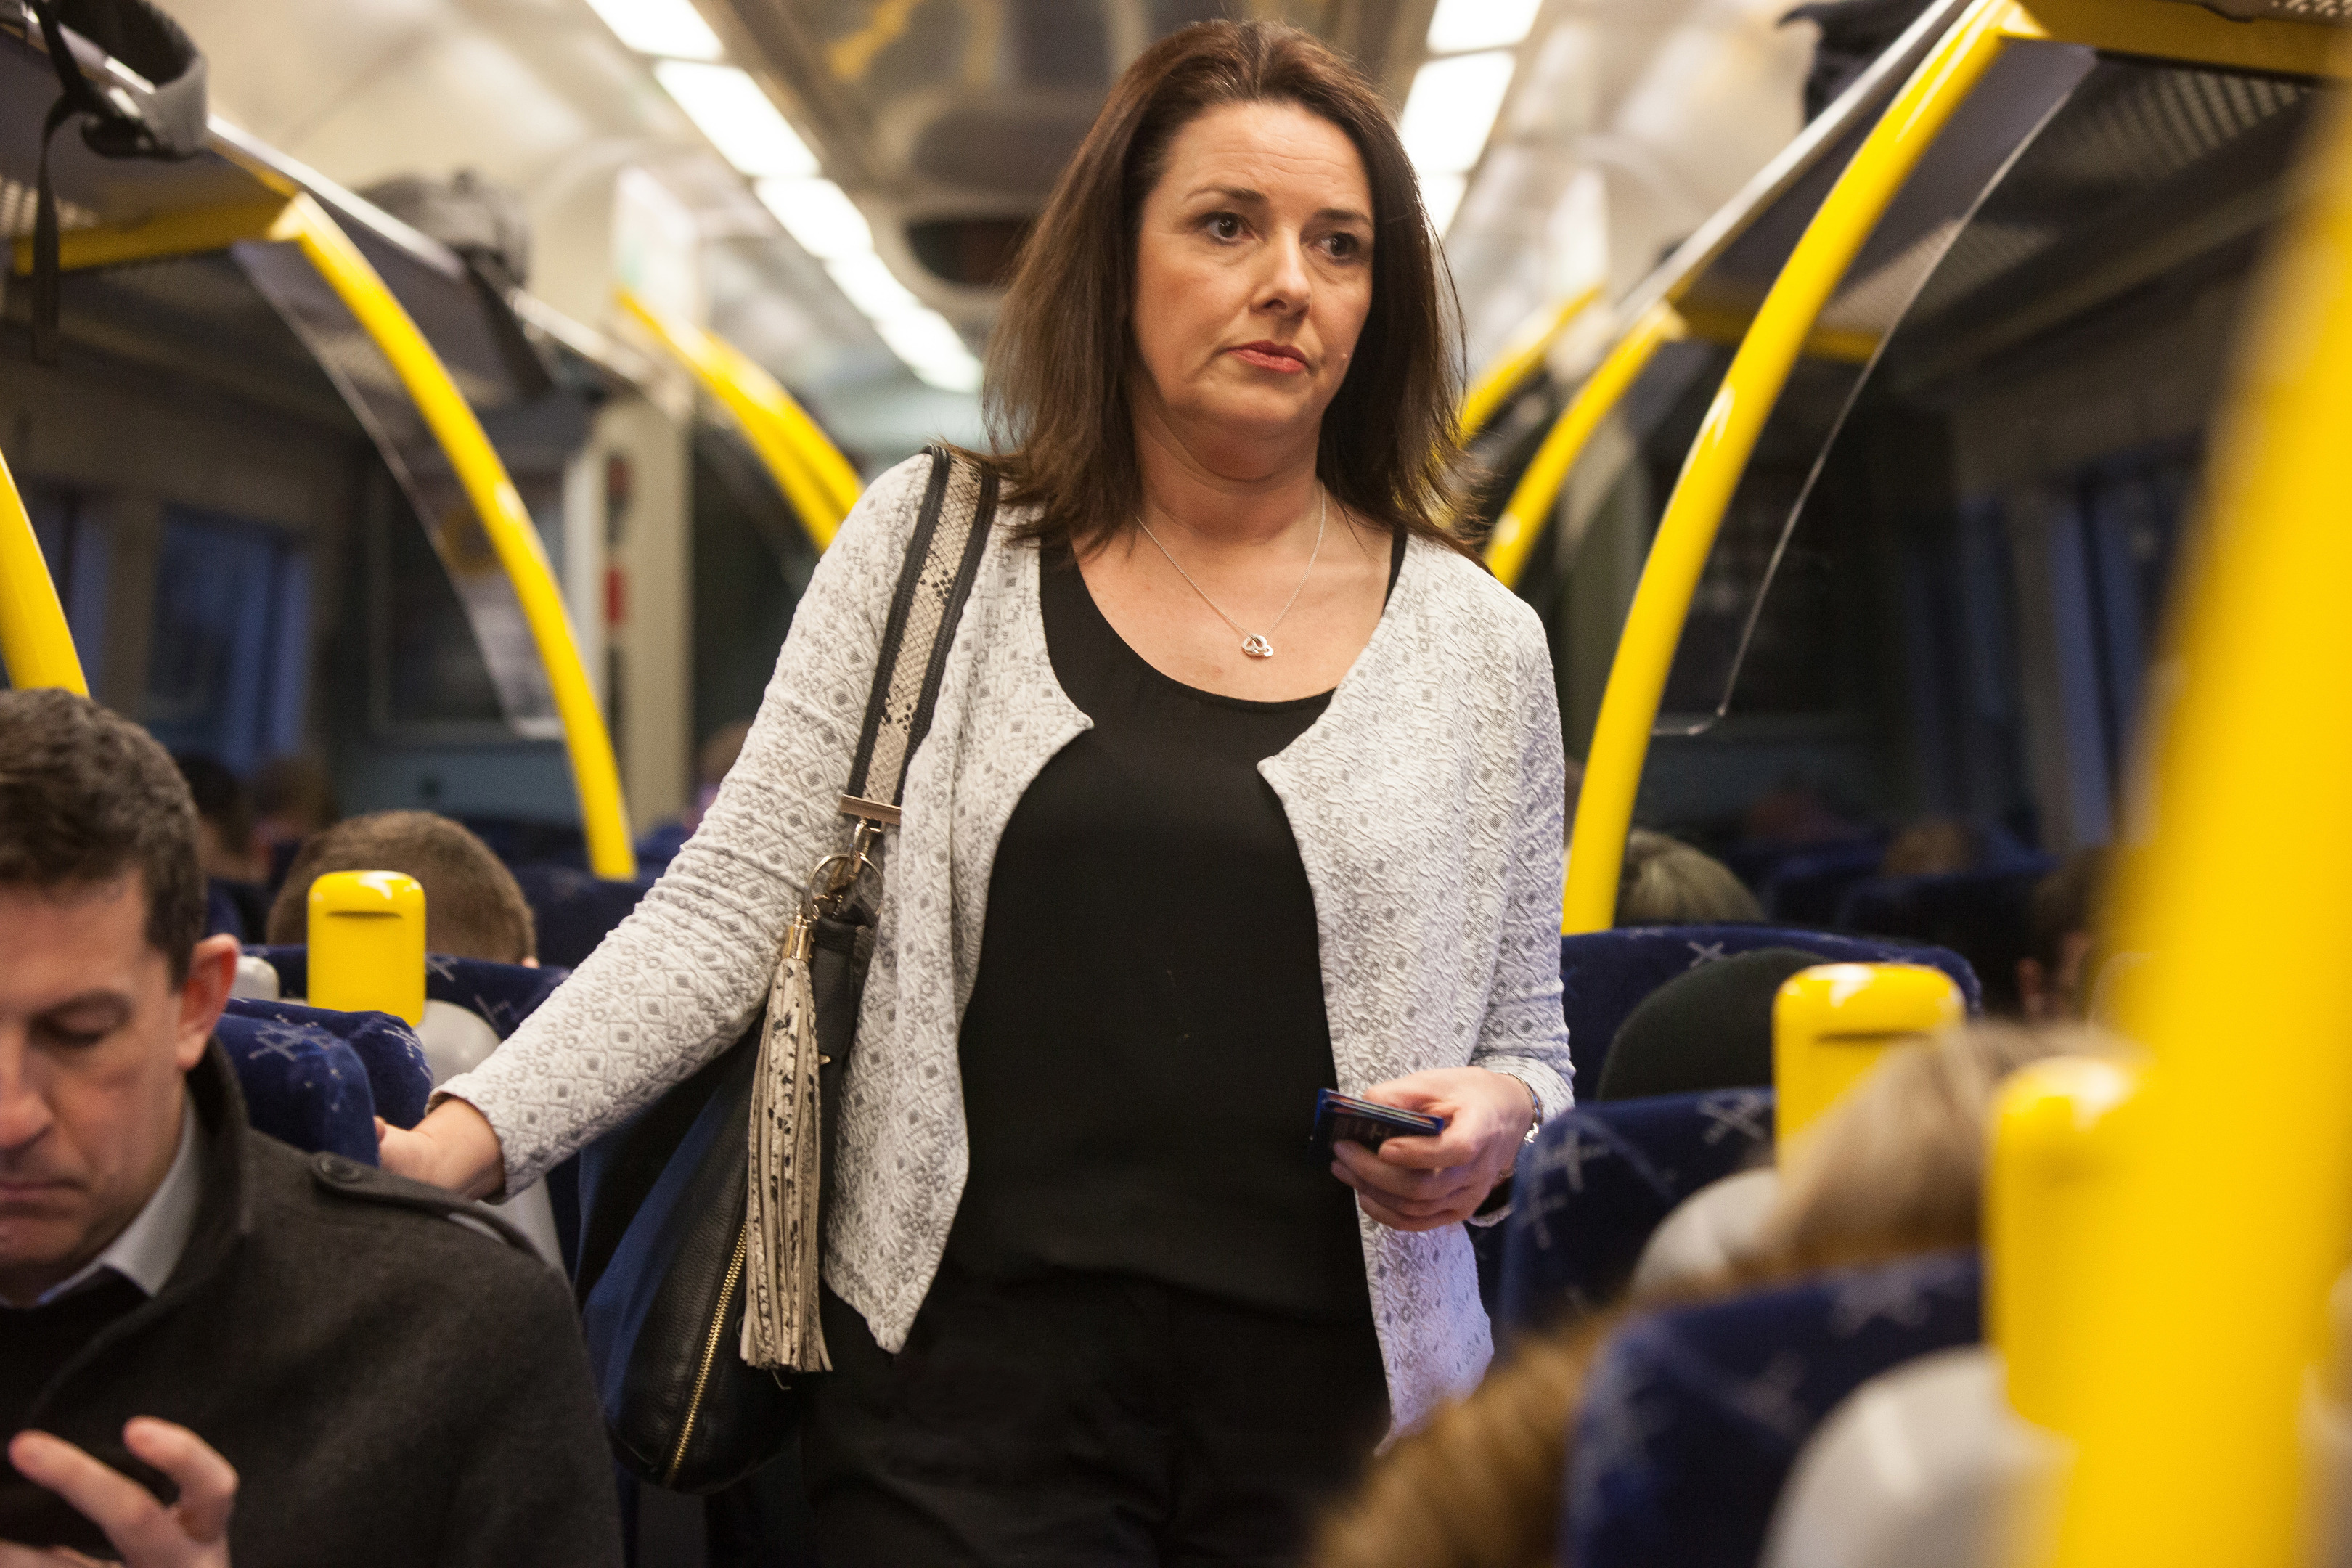 Fairness for Fife Commuters group member June Paterson commutes from Kinghorn to her work in Edinburgh.